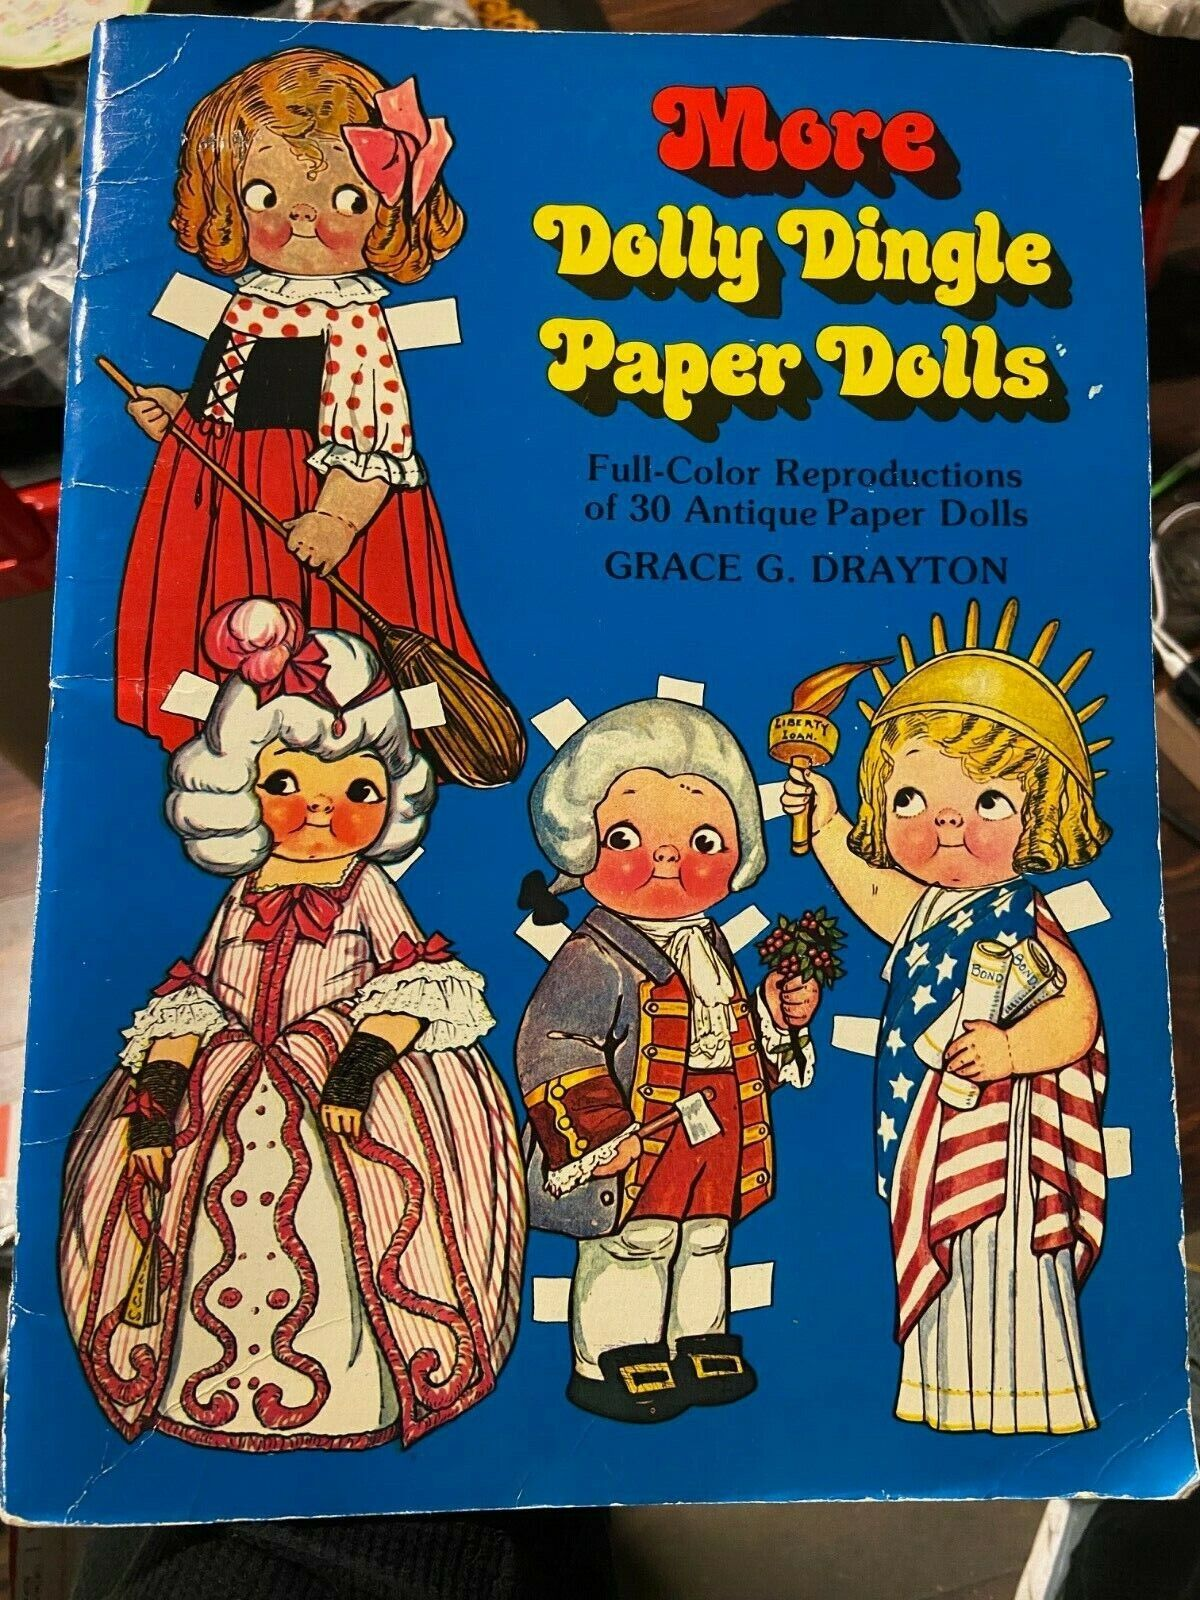 Vintage More Dolly Dingle Paper Dolls Reproduction 30 Paper Dolls Drayton - $5.00